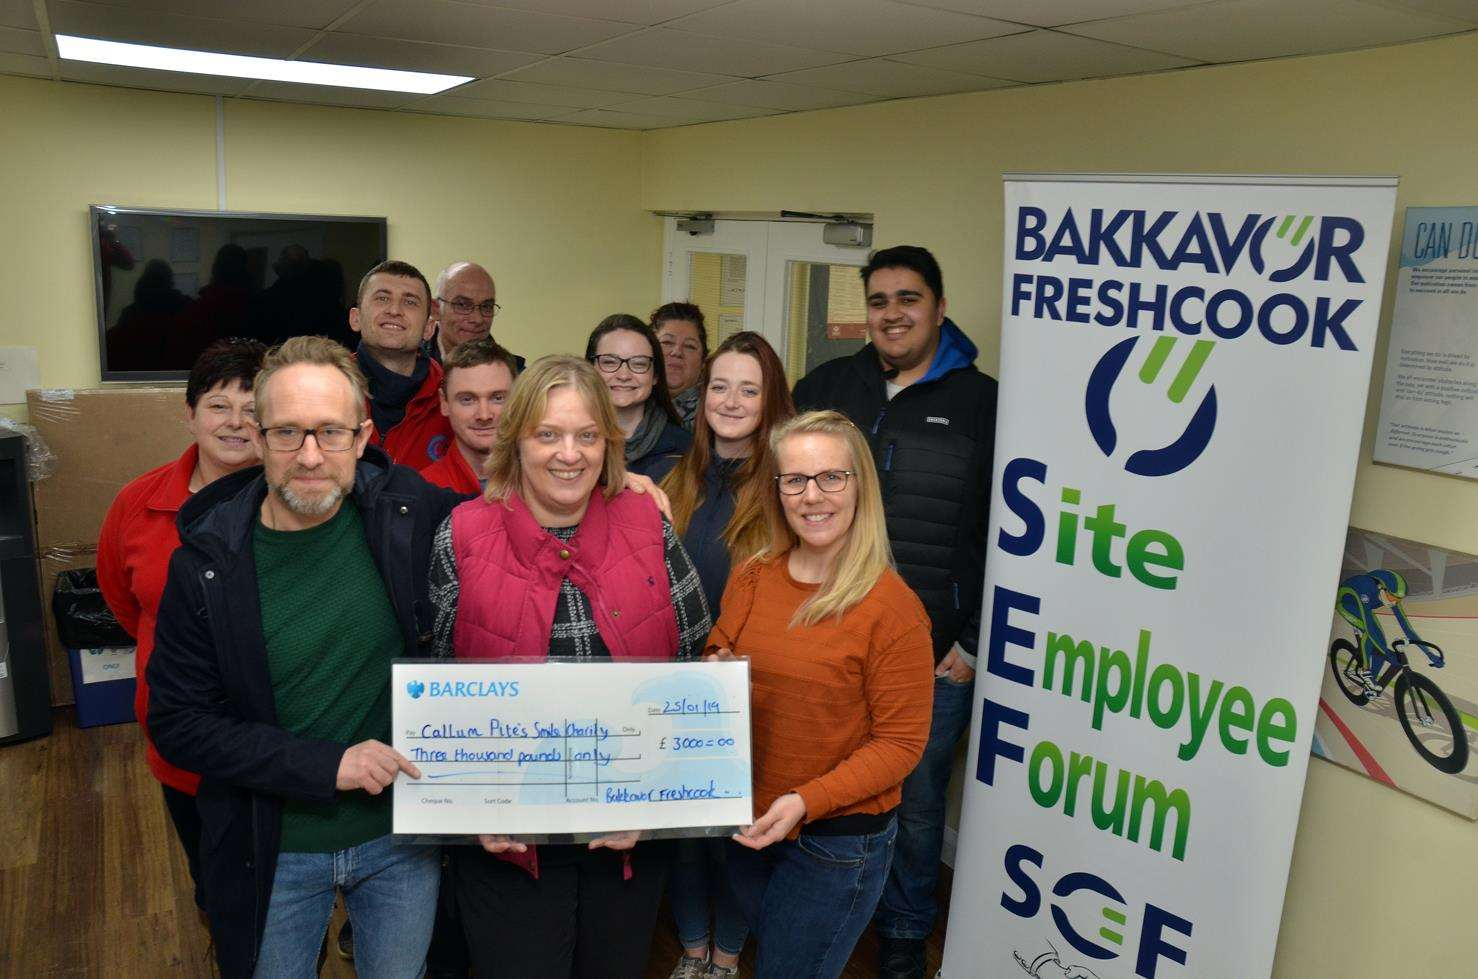 Bakkavor Freshcook factory manager Jonathon Wheatley presents the cheque to Michelle Pite with charity nominator Emma Rose and staff fundraisers.